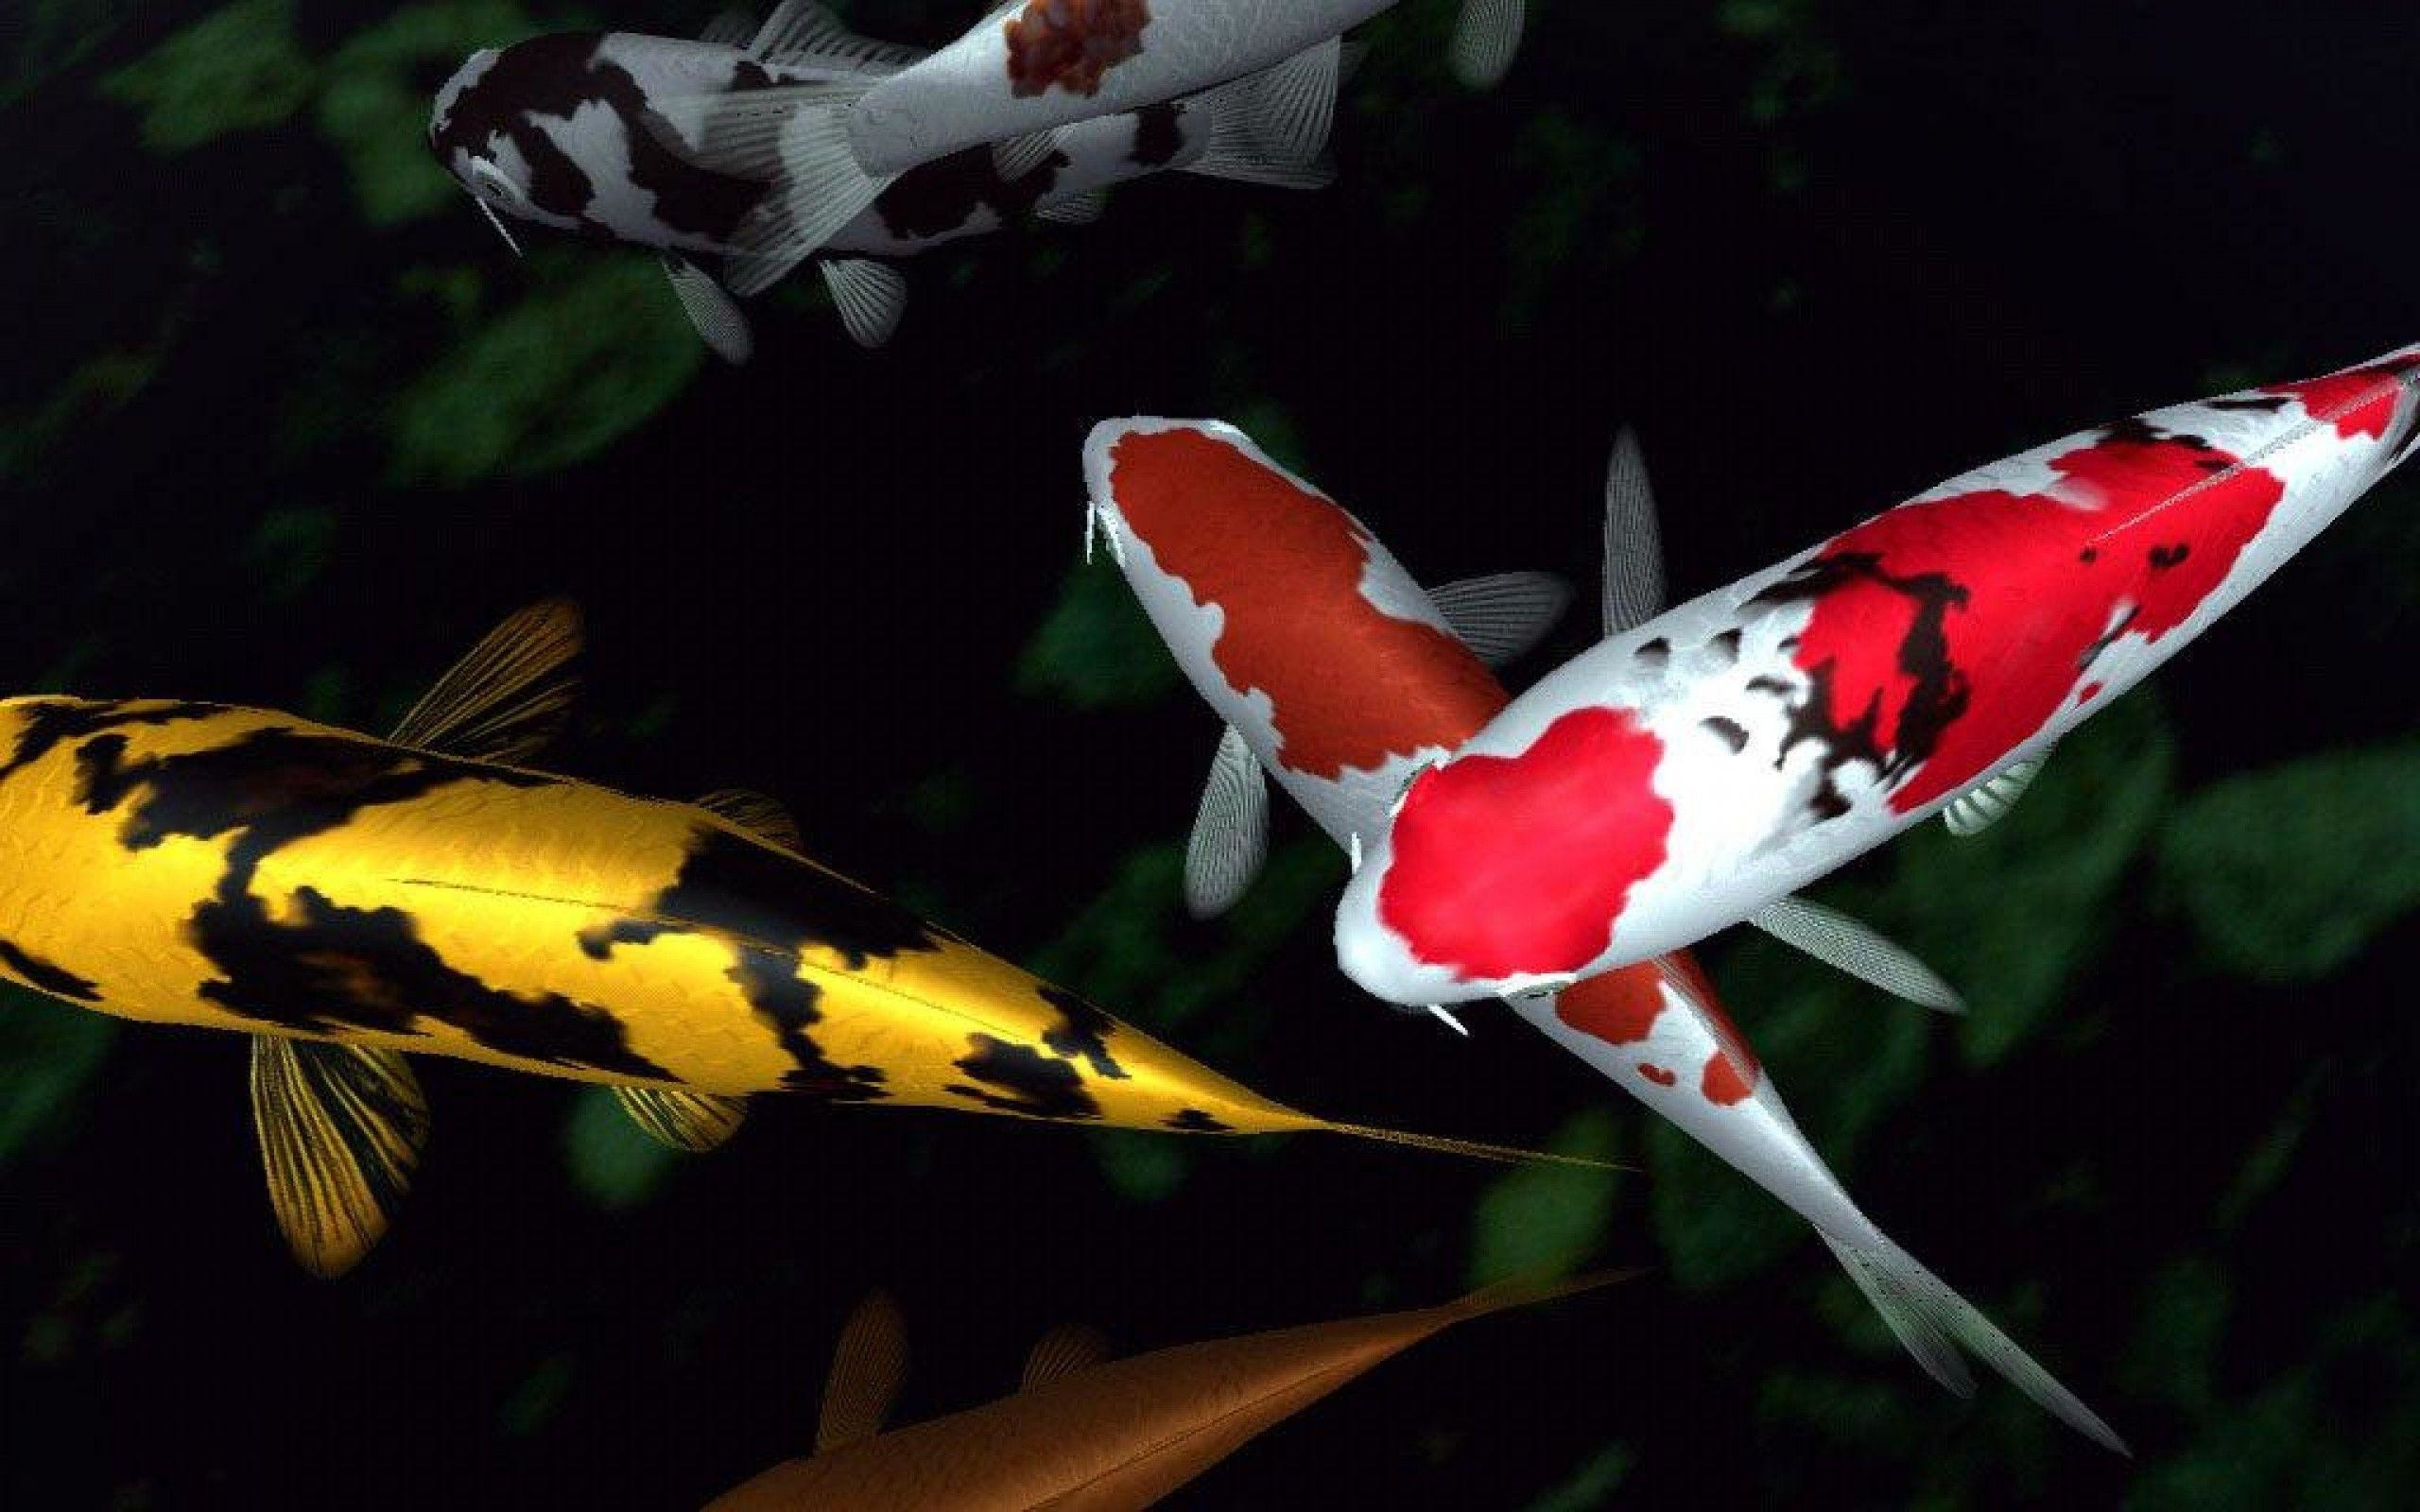 2560x1600 Koi Fish Wallpaper | Large HD Wallpaper Database